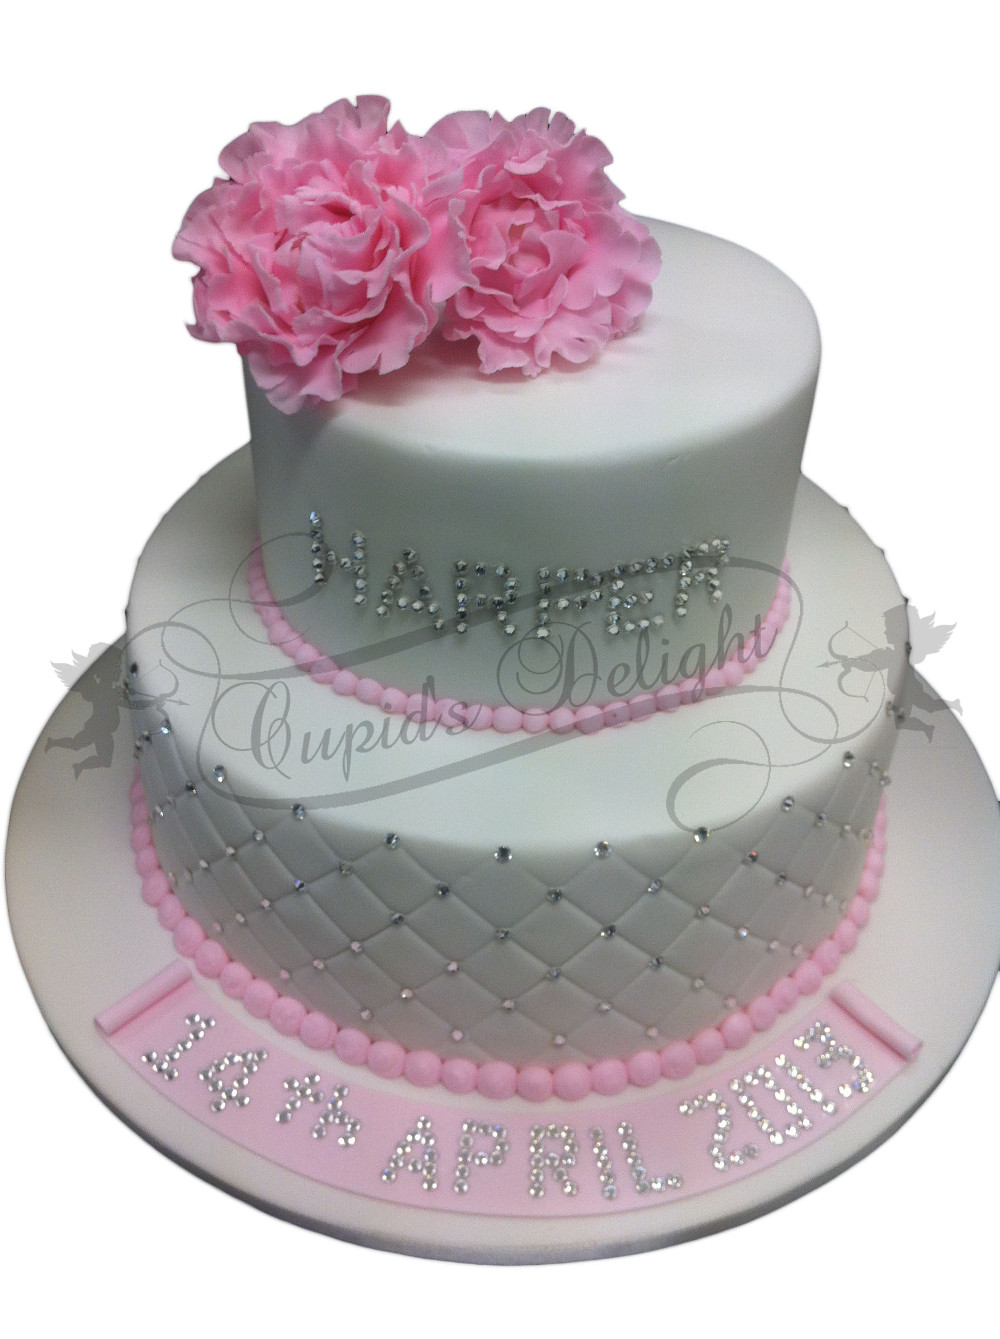 Baby Shower Cakes Perth Wa ~ Babycakes cupid s delight